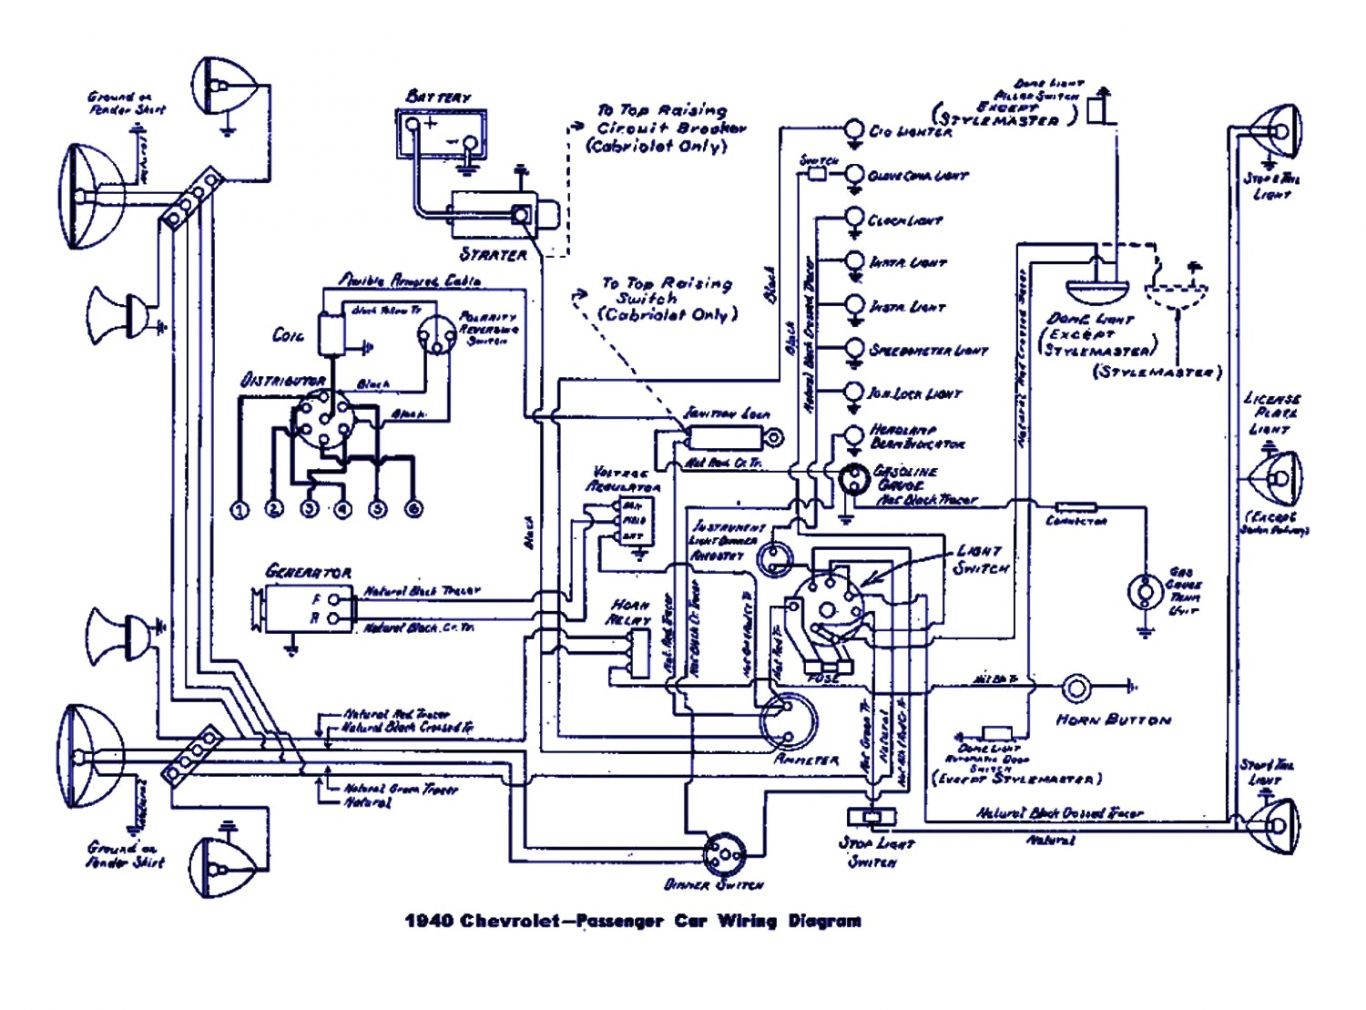 hight resolution of wiring diagram for 07 star golf cart wiring diagram blogs 36v solenoid wiring 36 volt solenoid wiring diagram amf